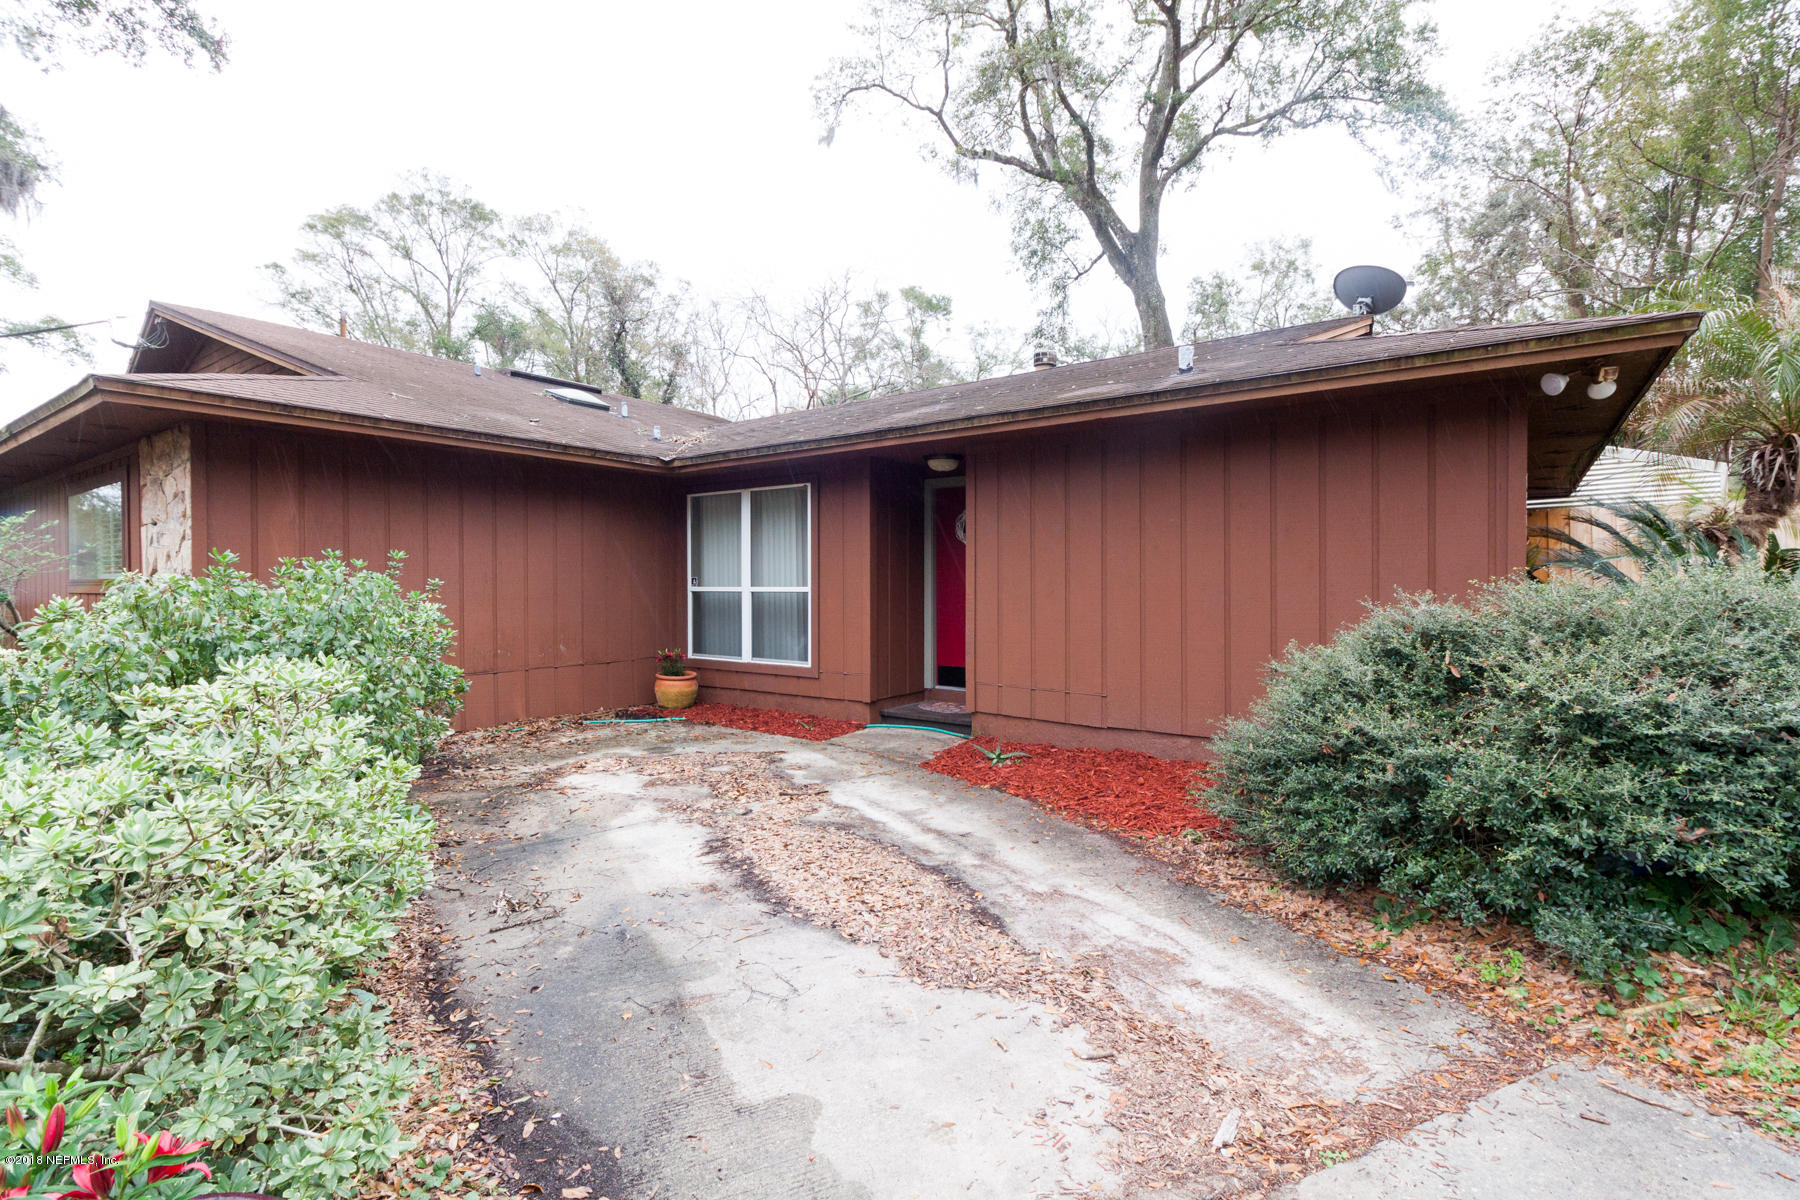 7520 JASPER, JACKSONVILLE, FLORIDA 32211, 3 Bedrooms Bedrooms, ,2 BathroomsBathrooms,Residential - single family,For sale,JASPER,921294